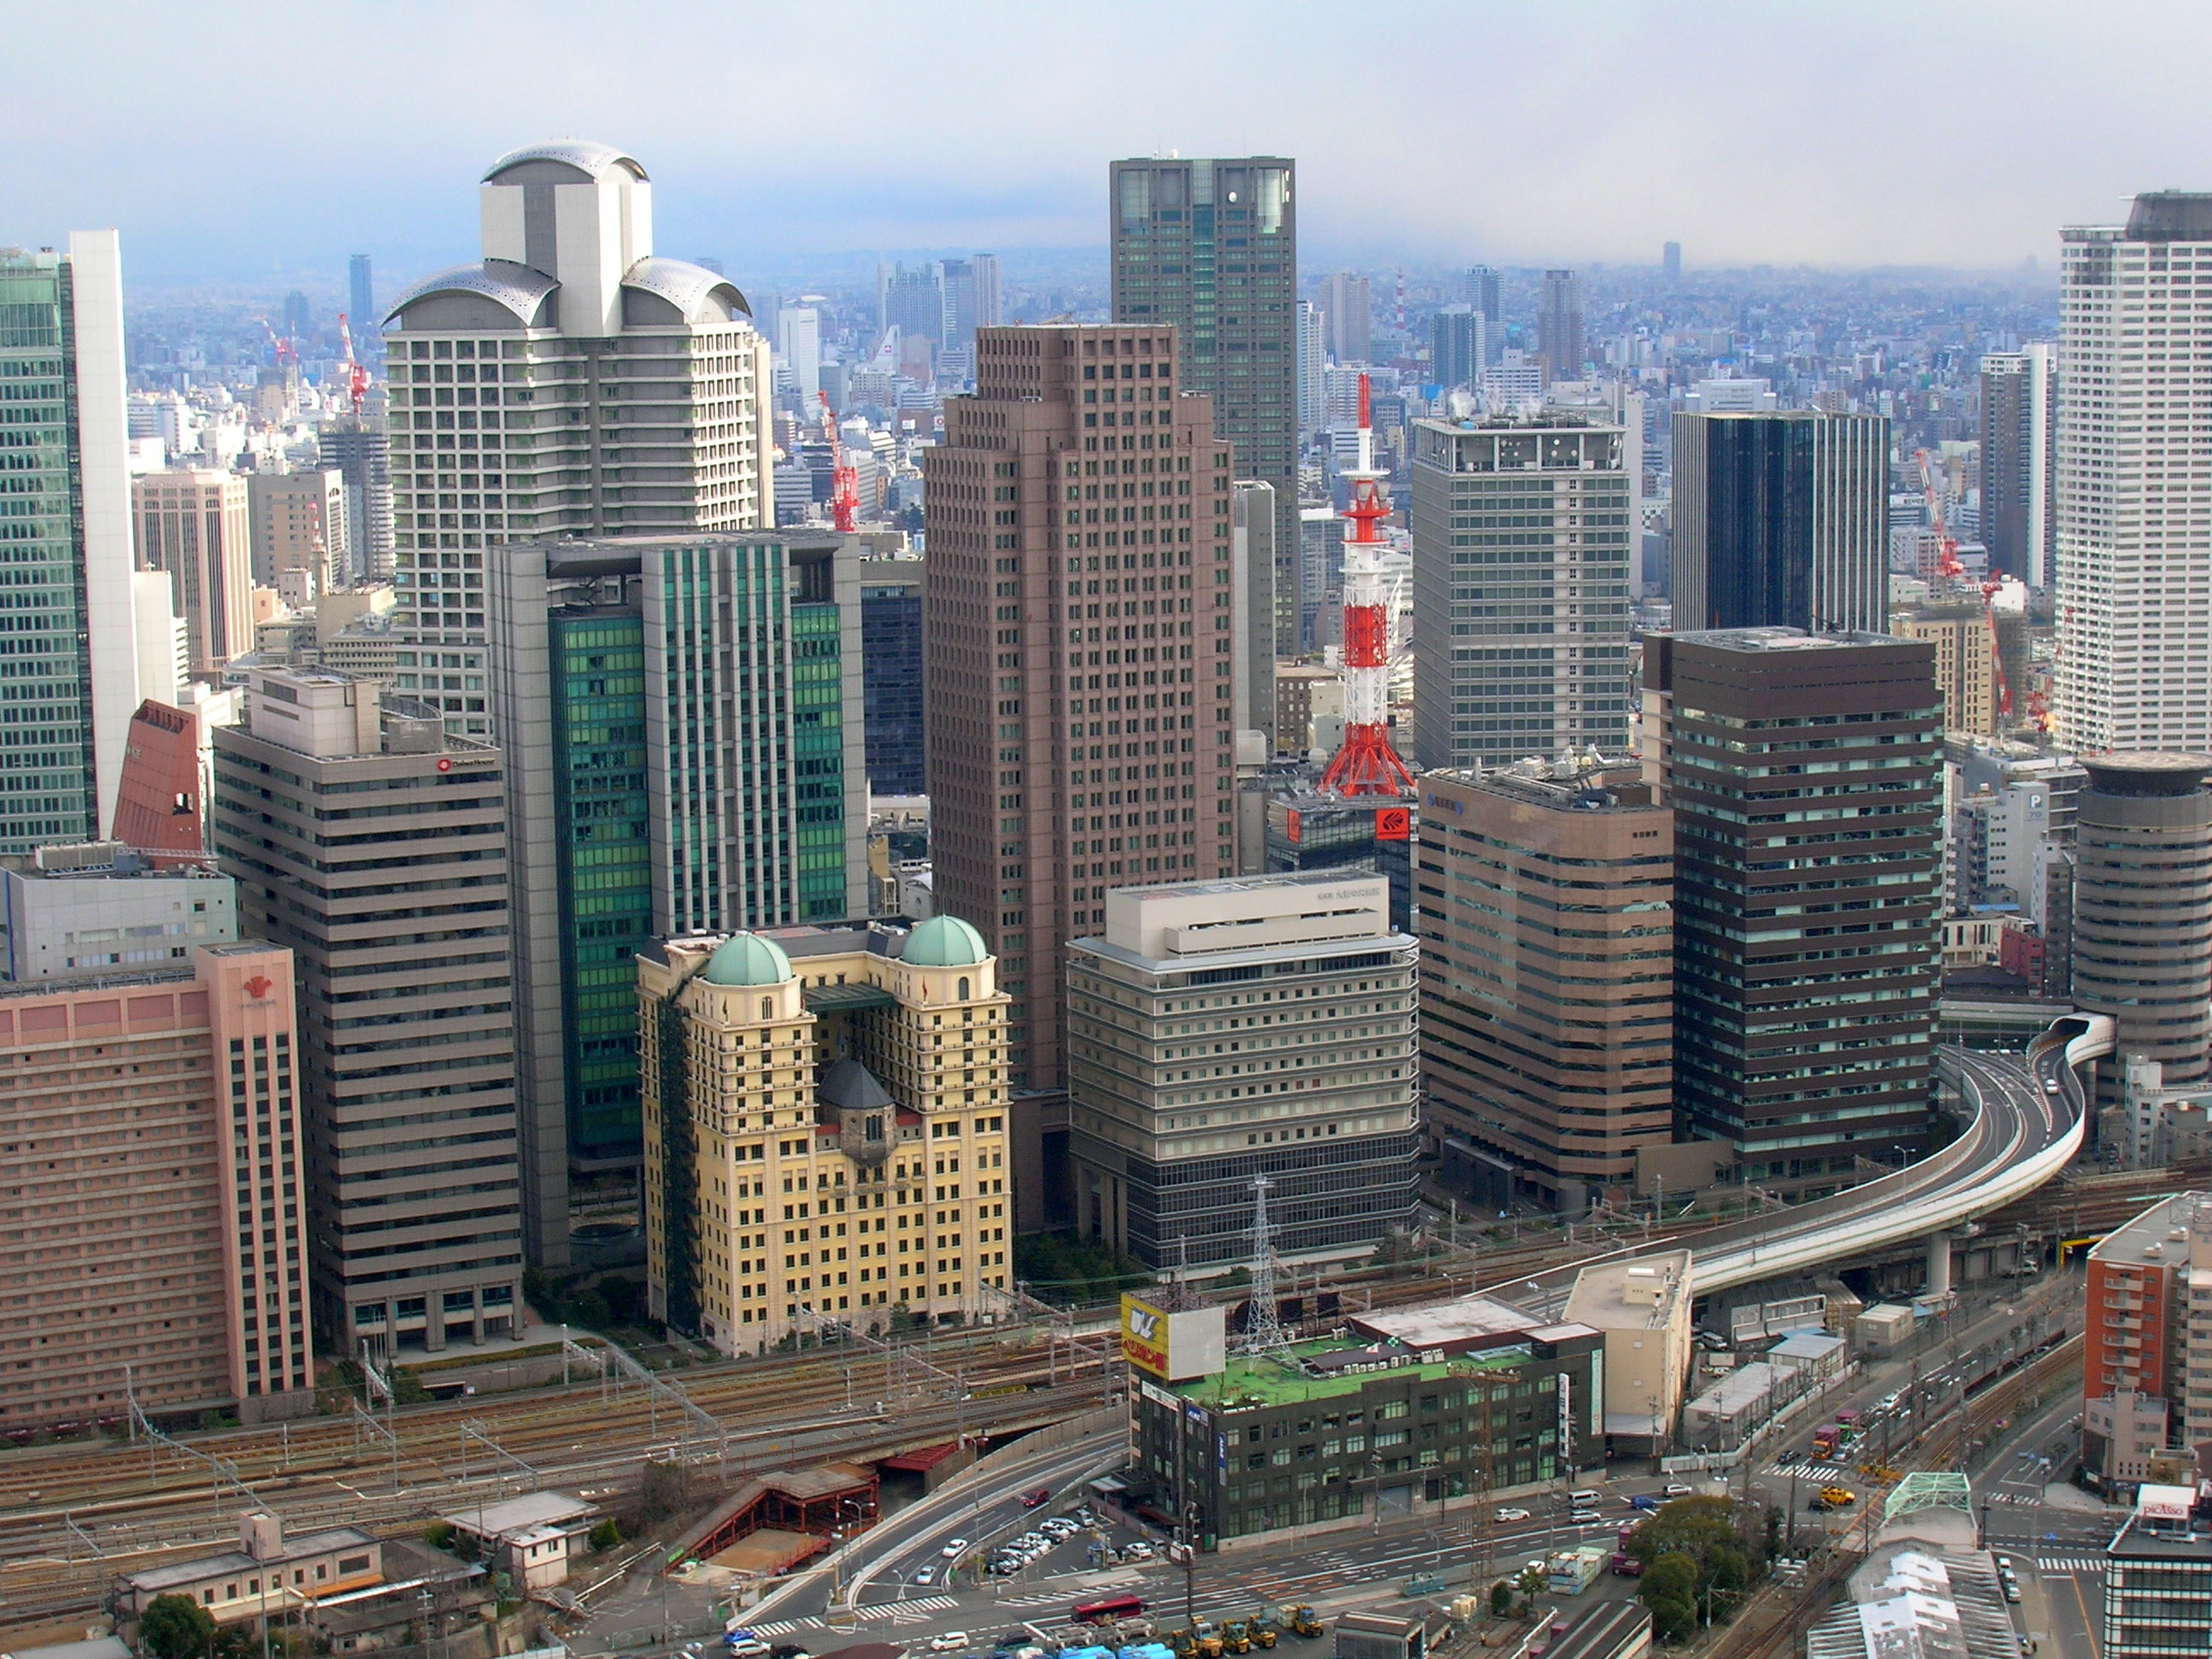 File:Umeda Sky Building View north.jpg - Wikimedia Commons